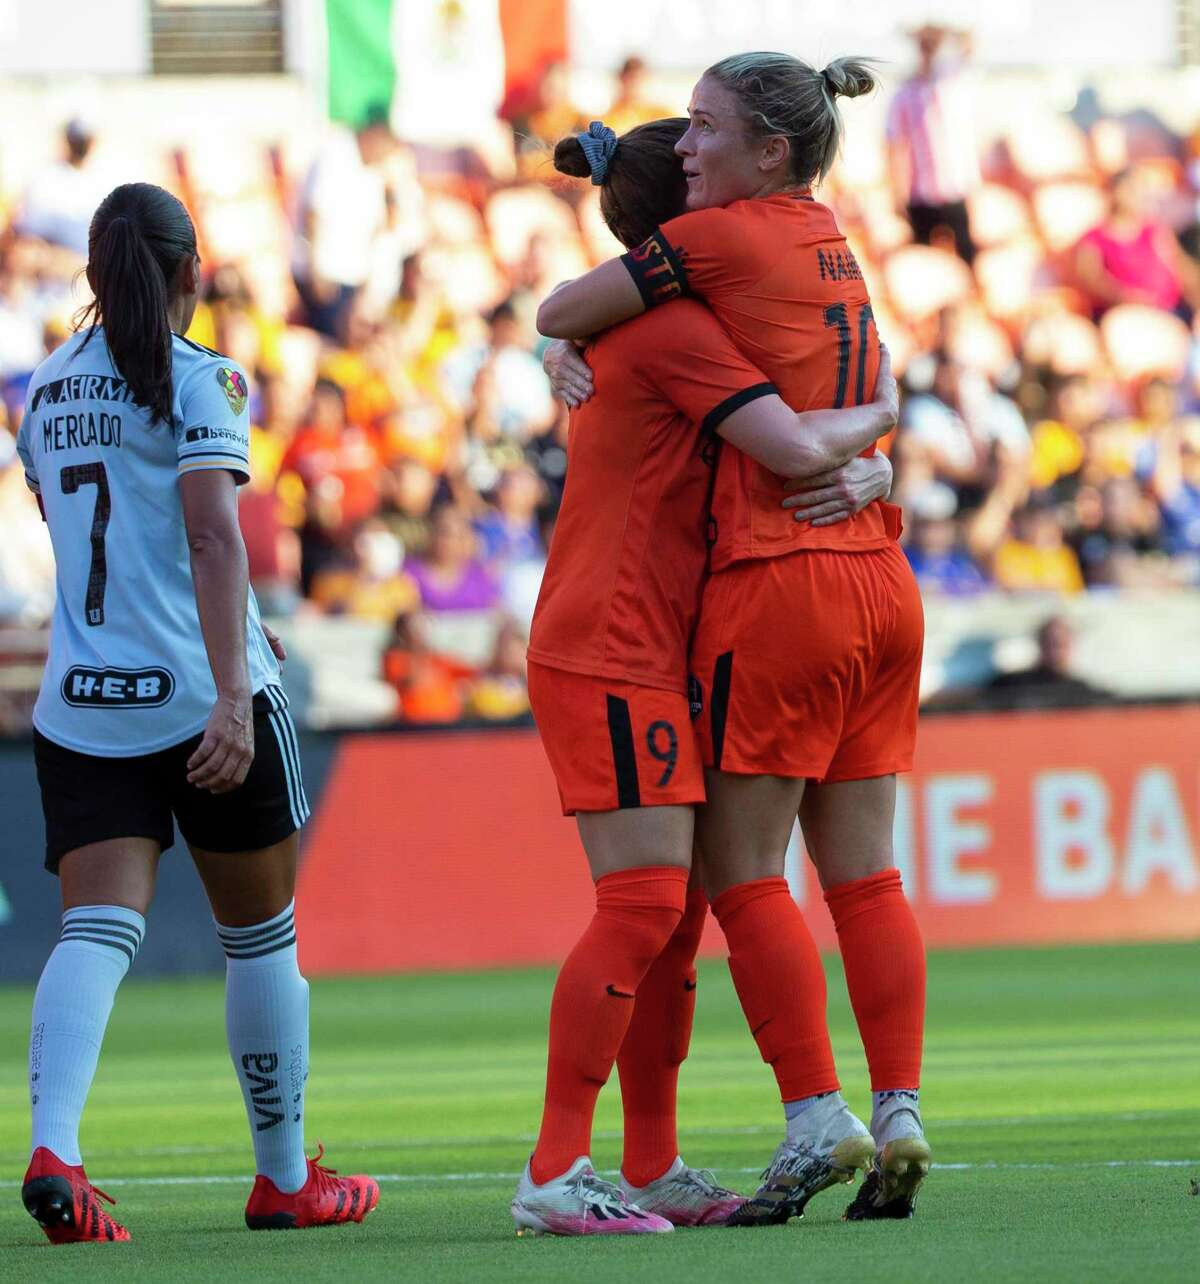 Houston Dash's Christine Nairn (10) and Haley Hanson (9) hug after the Dash scored its first goal during the first half of an international friendly match against Tigres Femenil Sunday, Sept. 19, 2021, at BBVA Stadium in Houston. The goal started with a corner kick from Nairn. Nair is set to retire and join Houston Fire Department Academy.